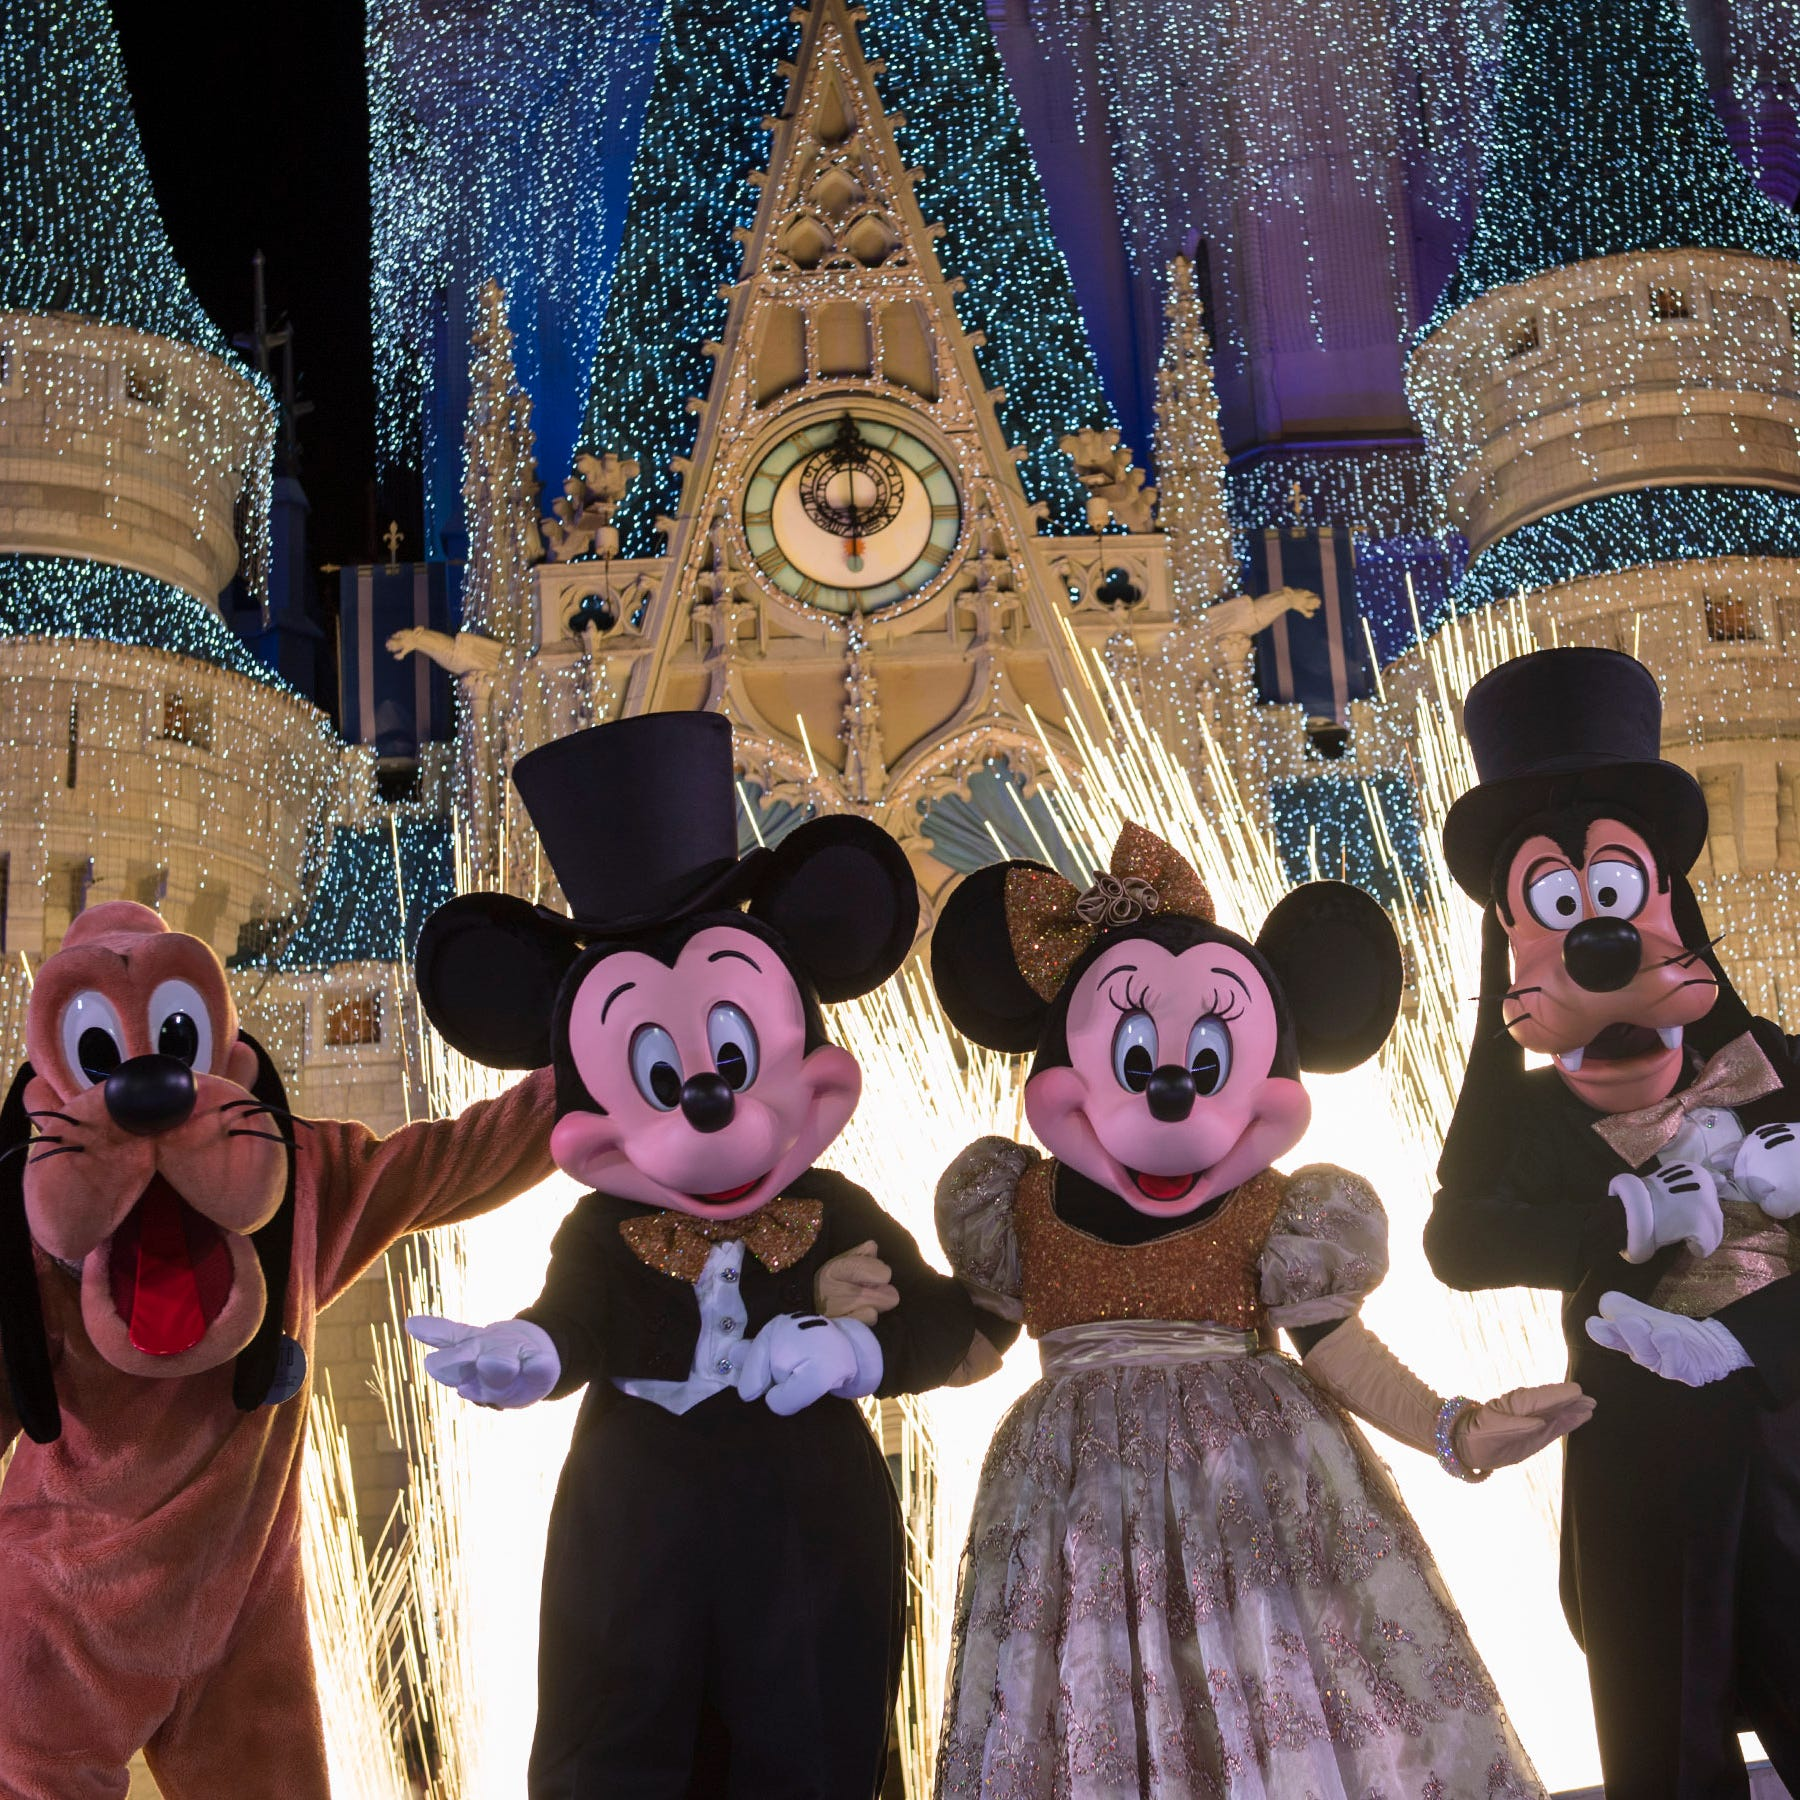 Guide to Disney World price hike: One-day ticket can now cost up to $159